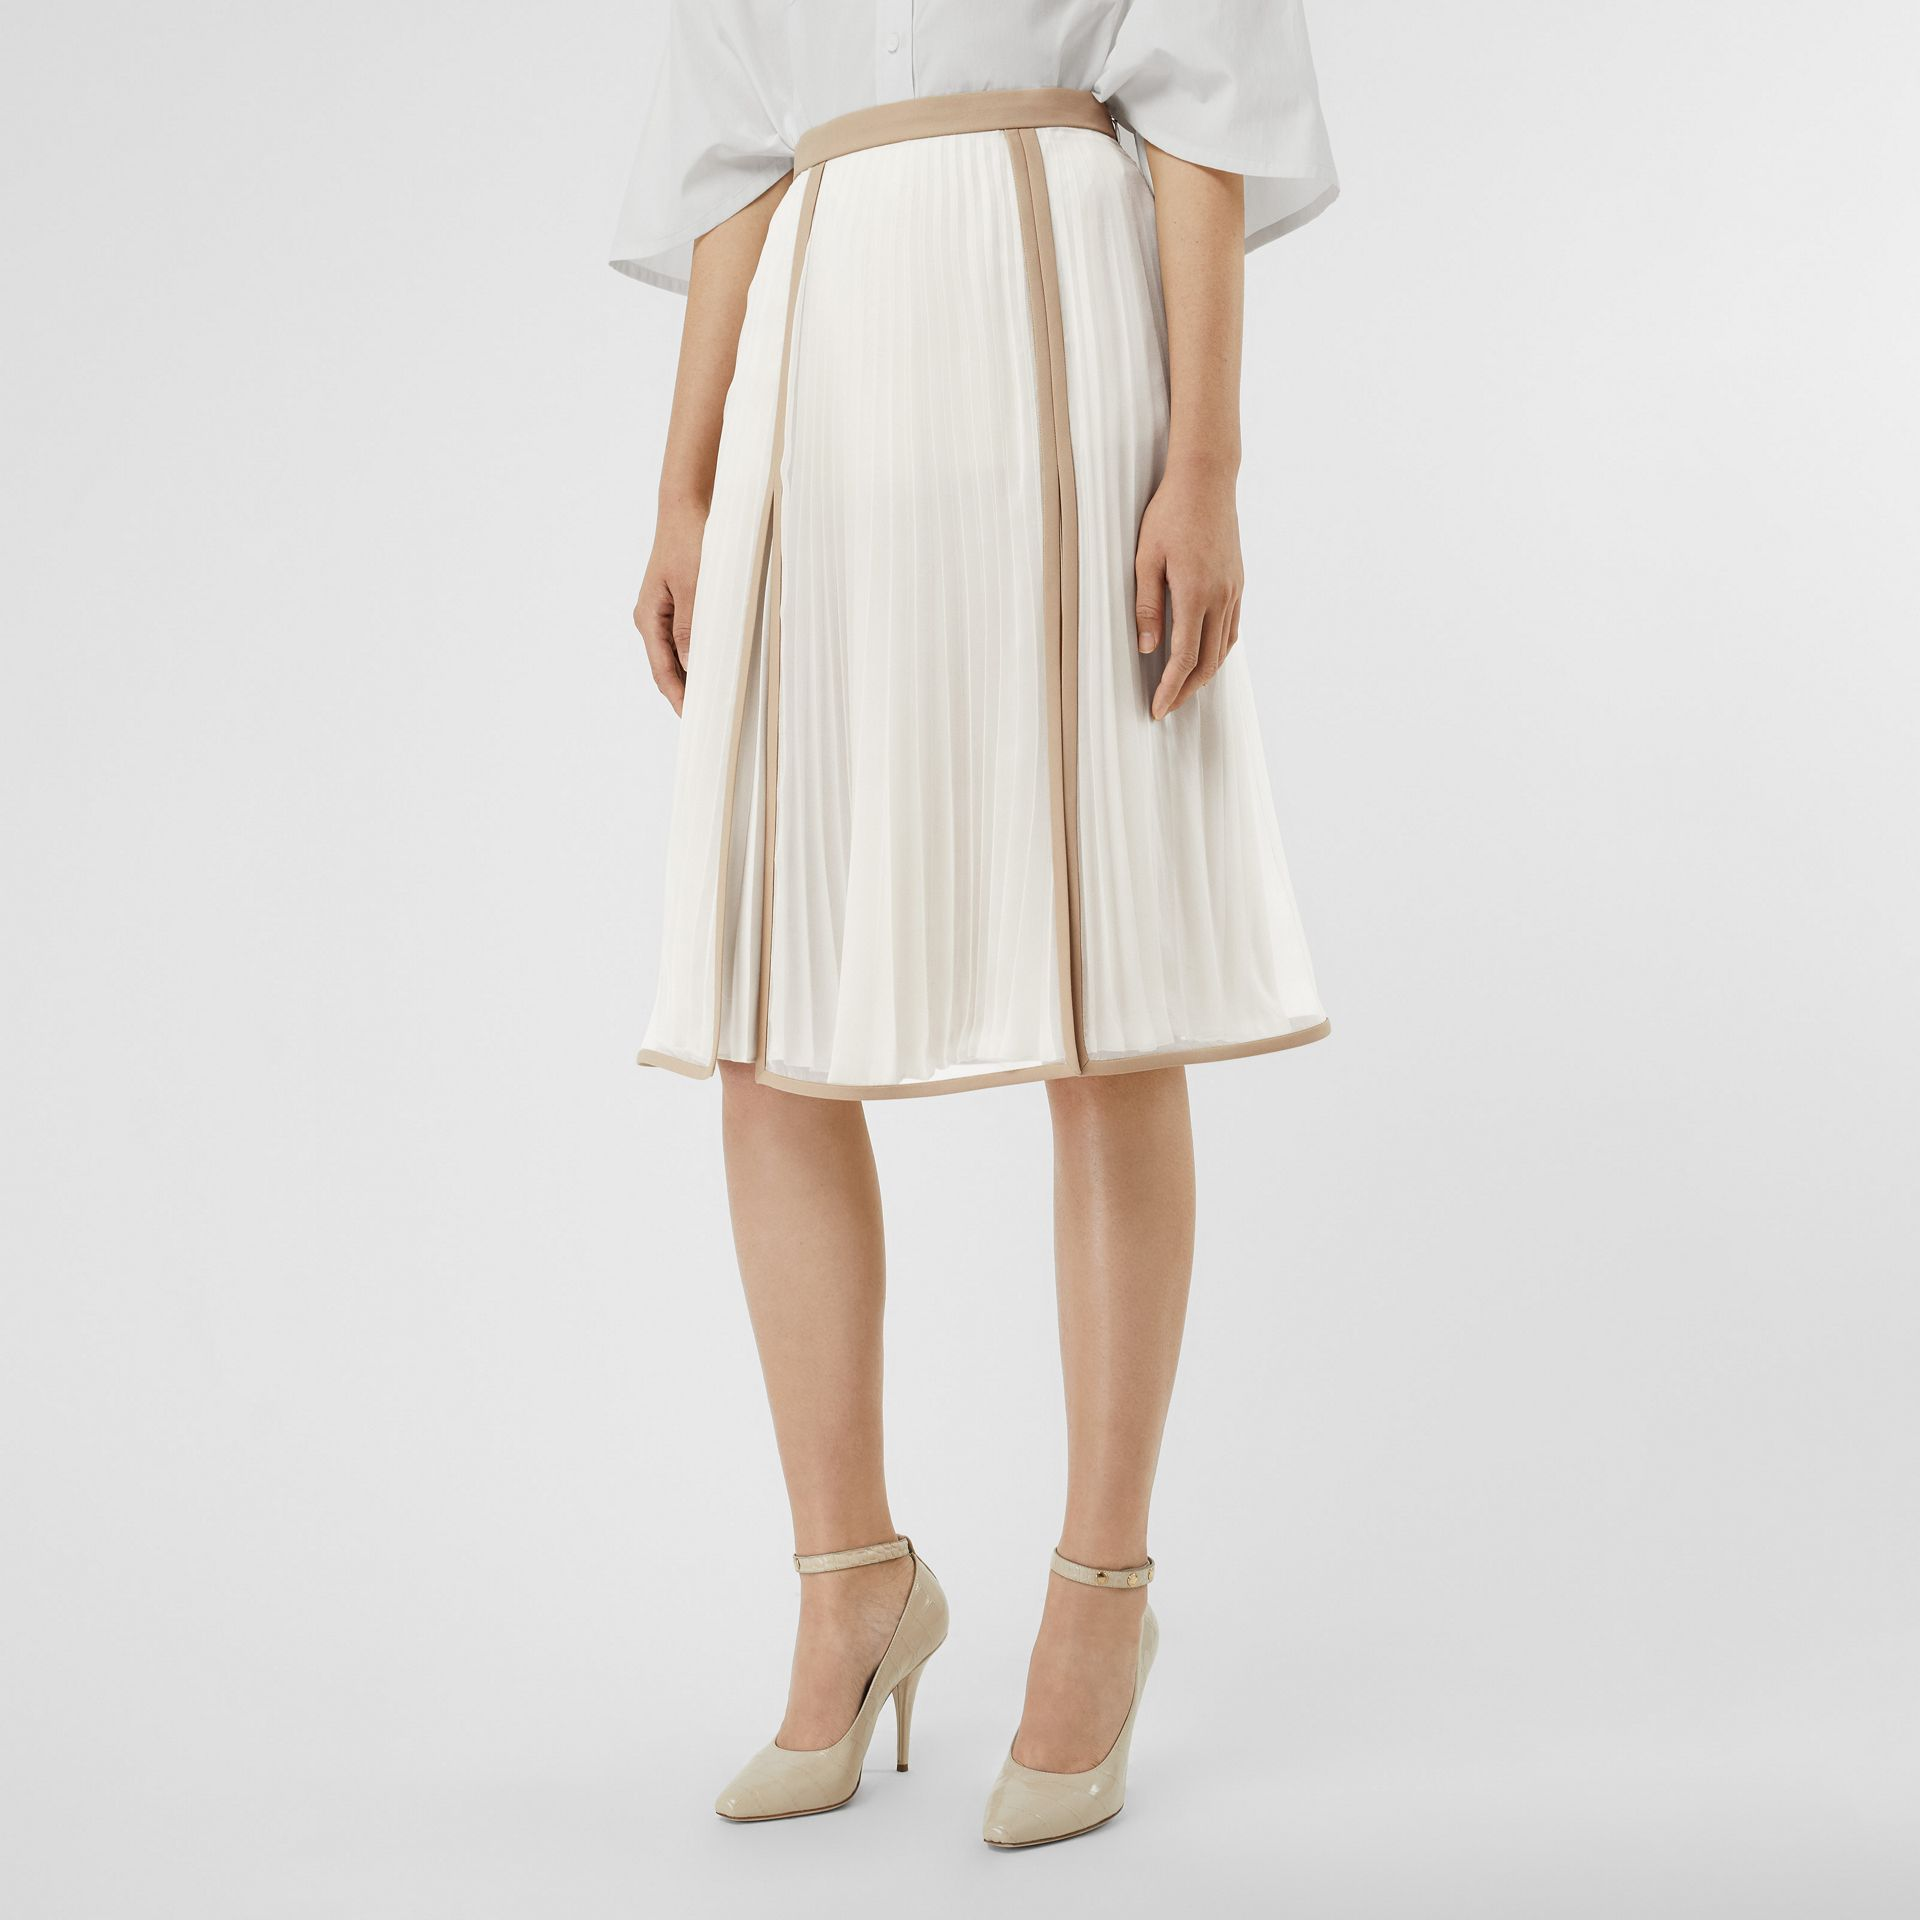 Chiffon Panel Silk Pleated Skirt in Magnolia - Women | Burberry - gallery image 4